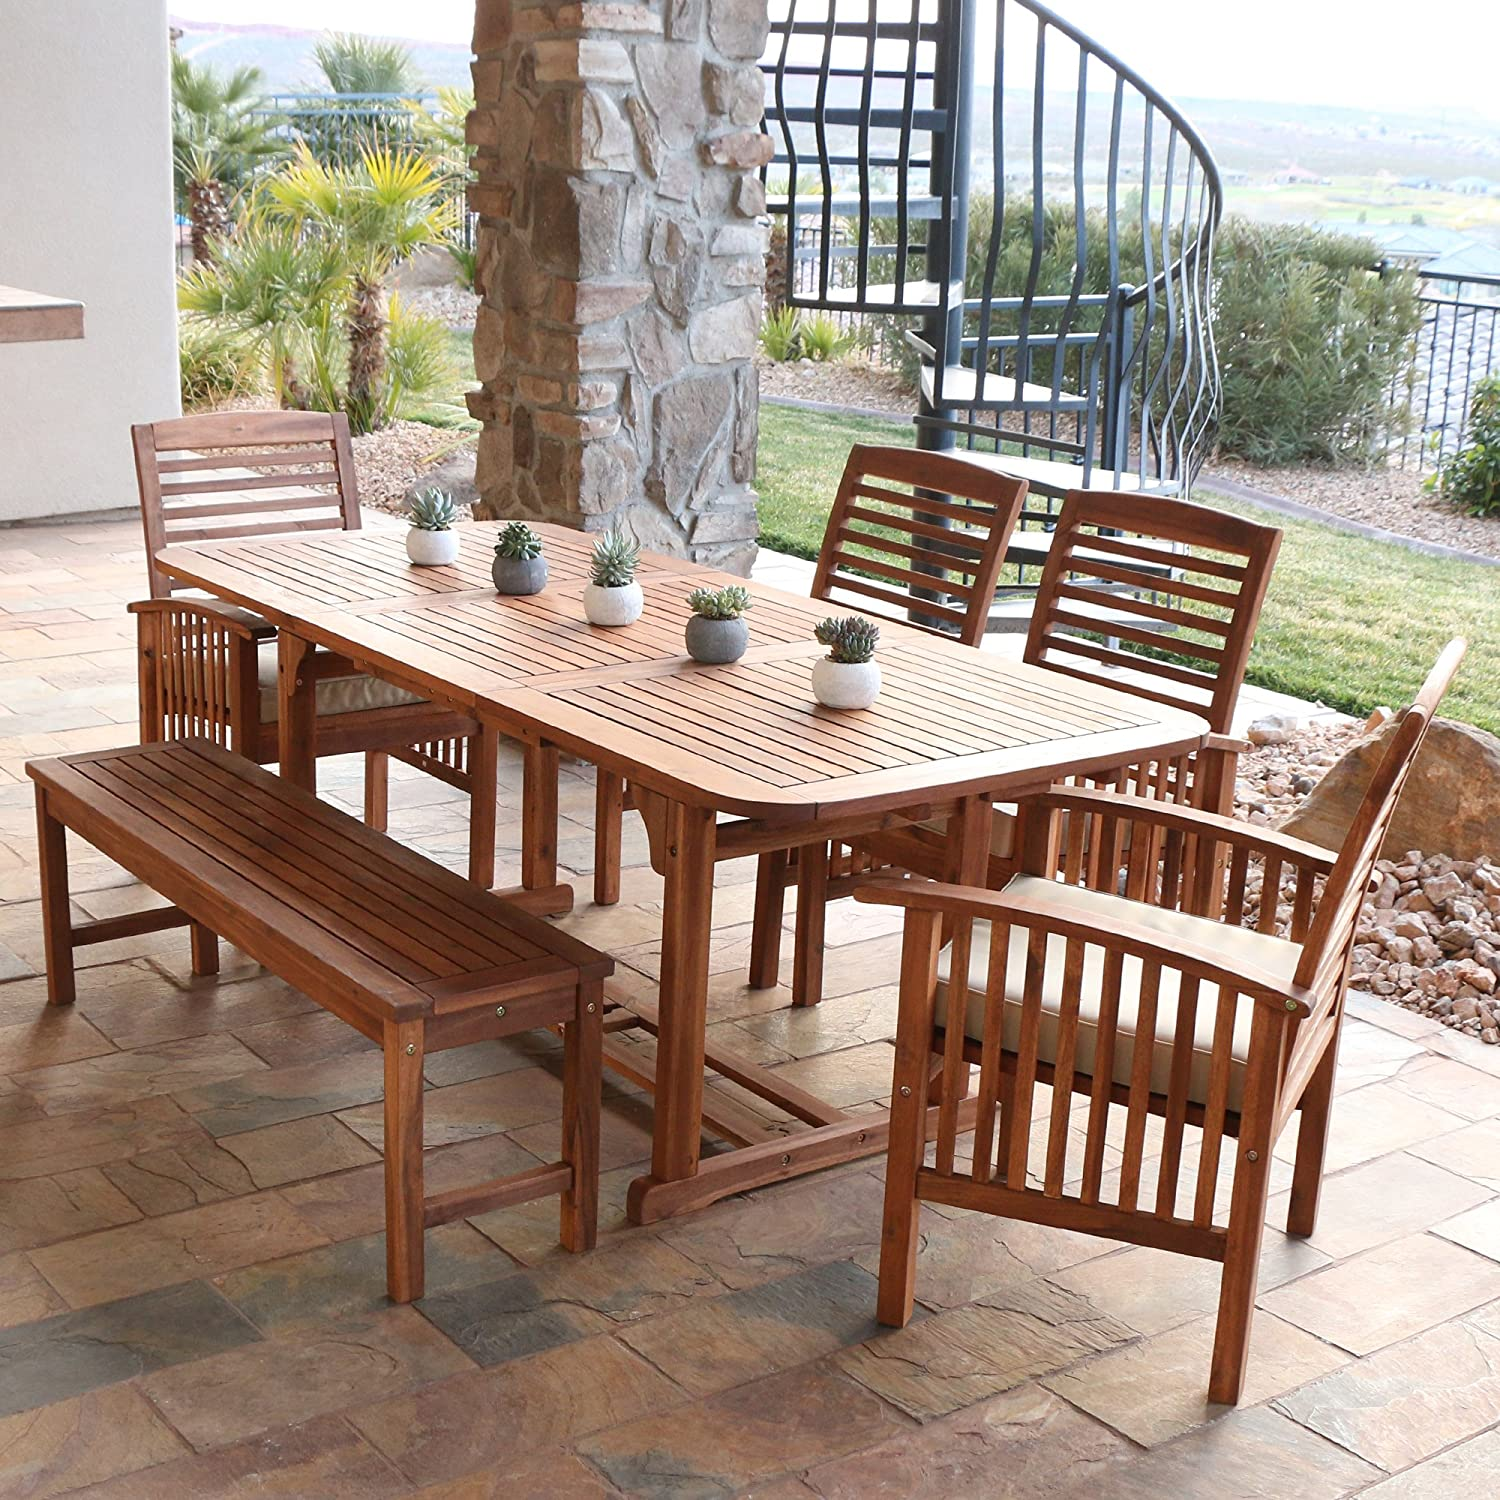 Superior Amazon.com: WE Furniture Solid Acacia Wood 6 Piece Patio Dining Set: Garden  U0026 Outdoor